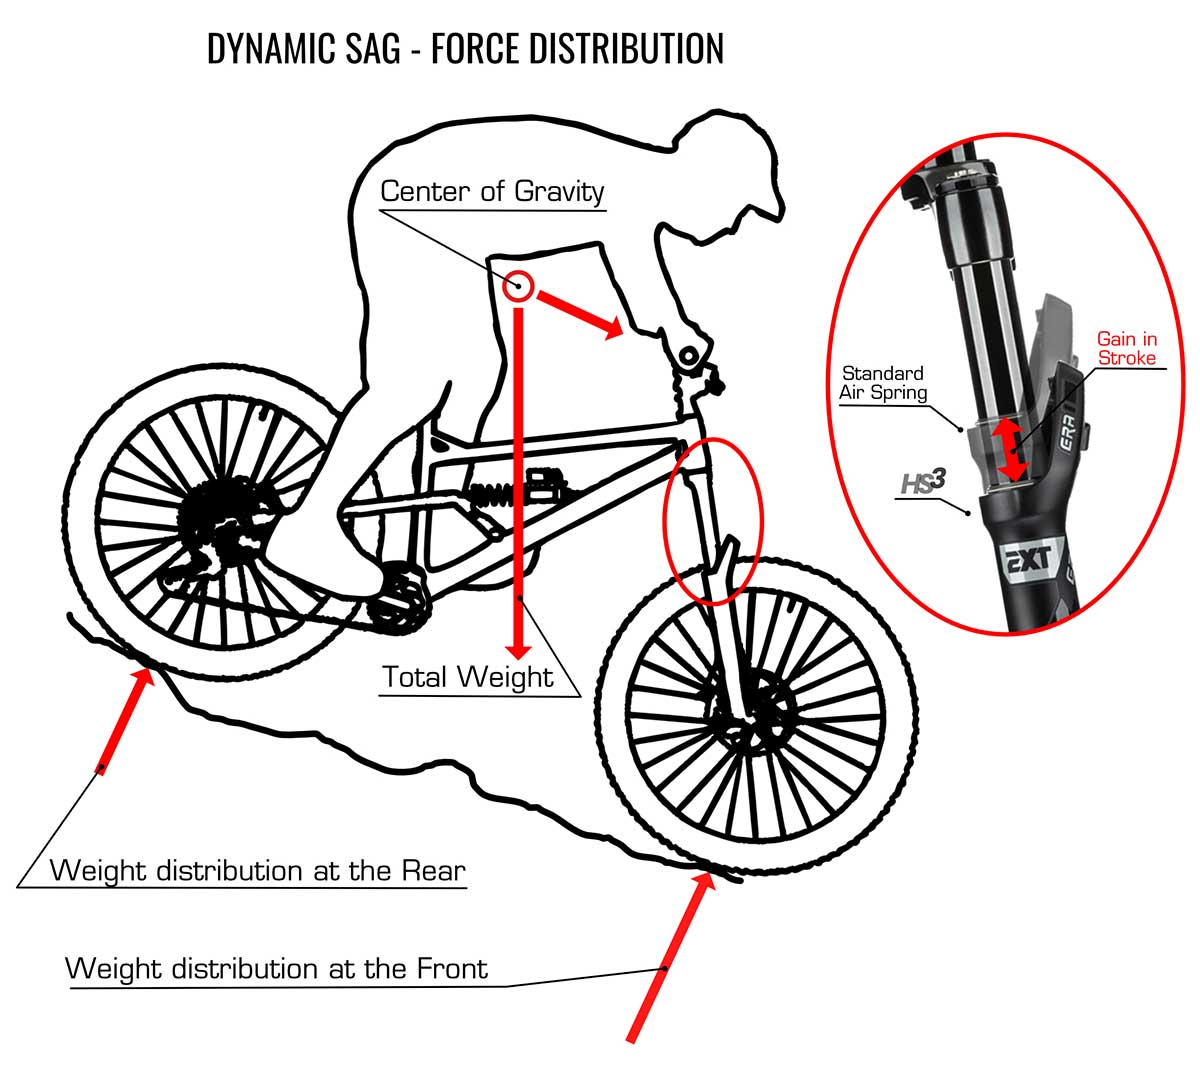 extreme shox explain fork mid stroke support dynamic sag